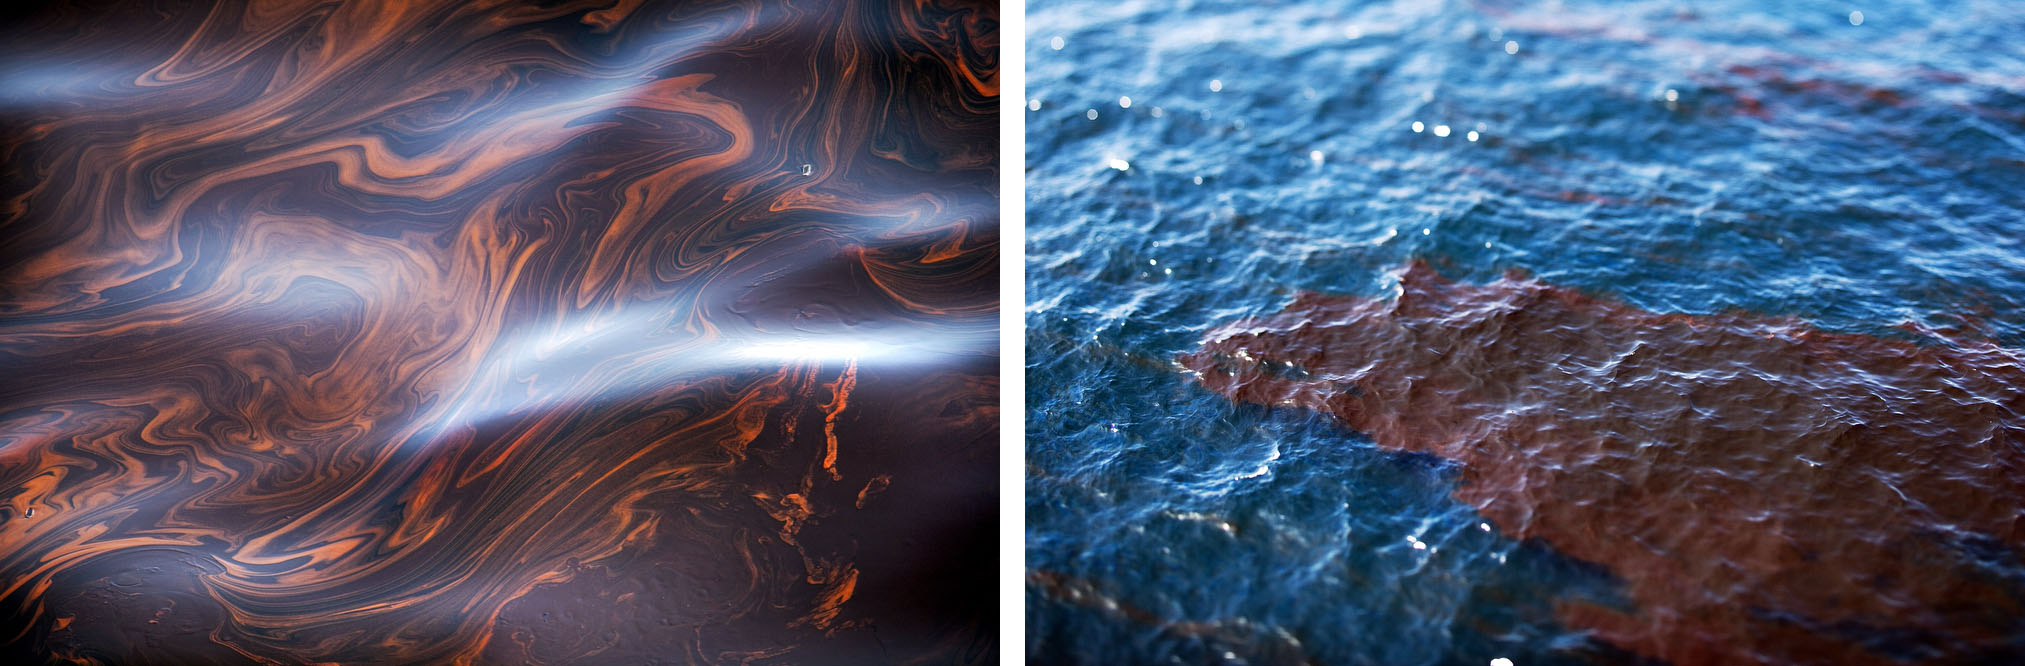 Pools of oil float in the Gulf of Mexico a week after the Deepwater Horizon disaster.